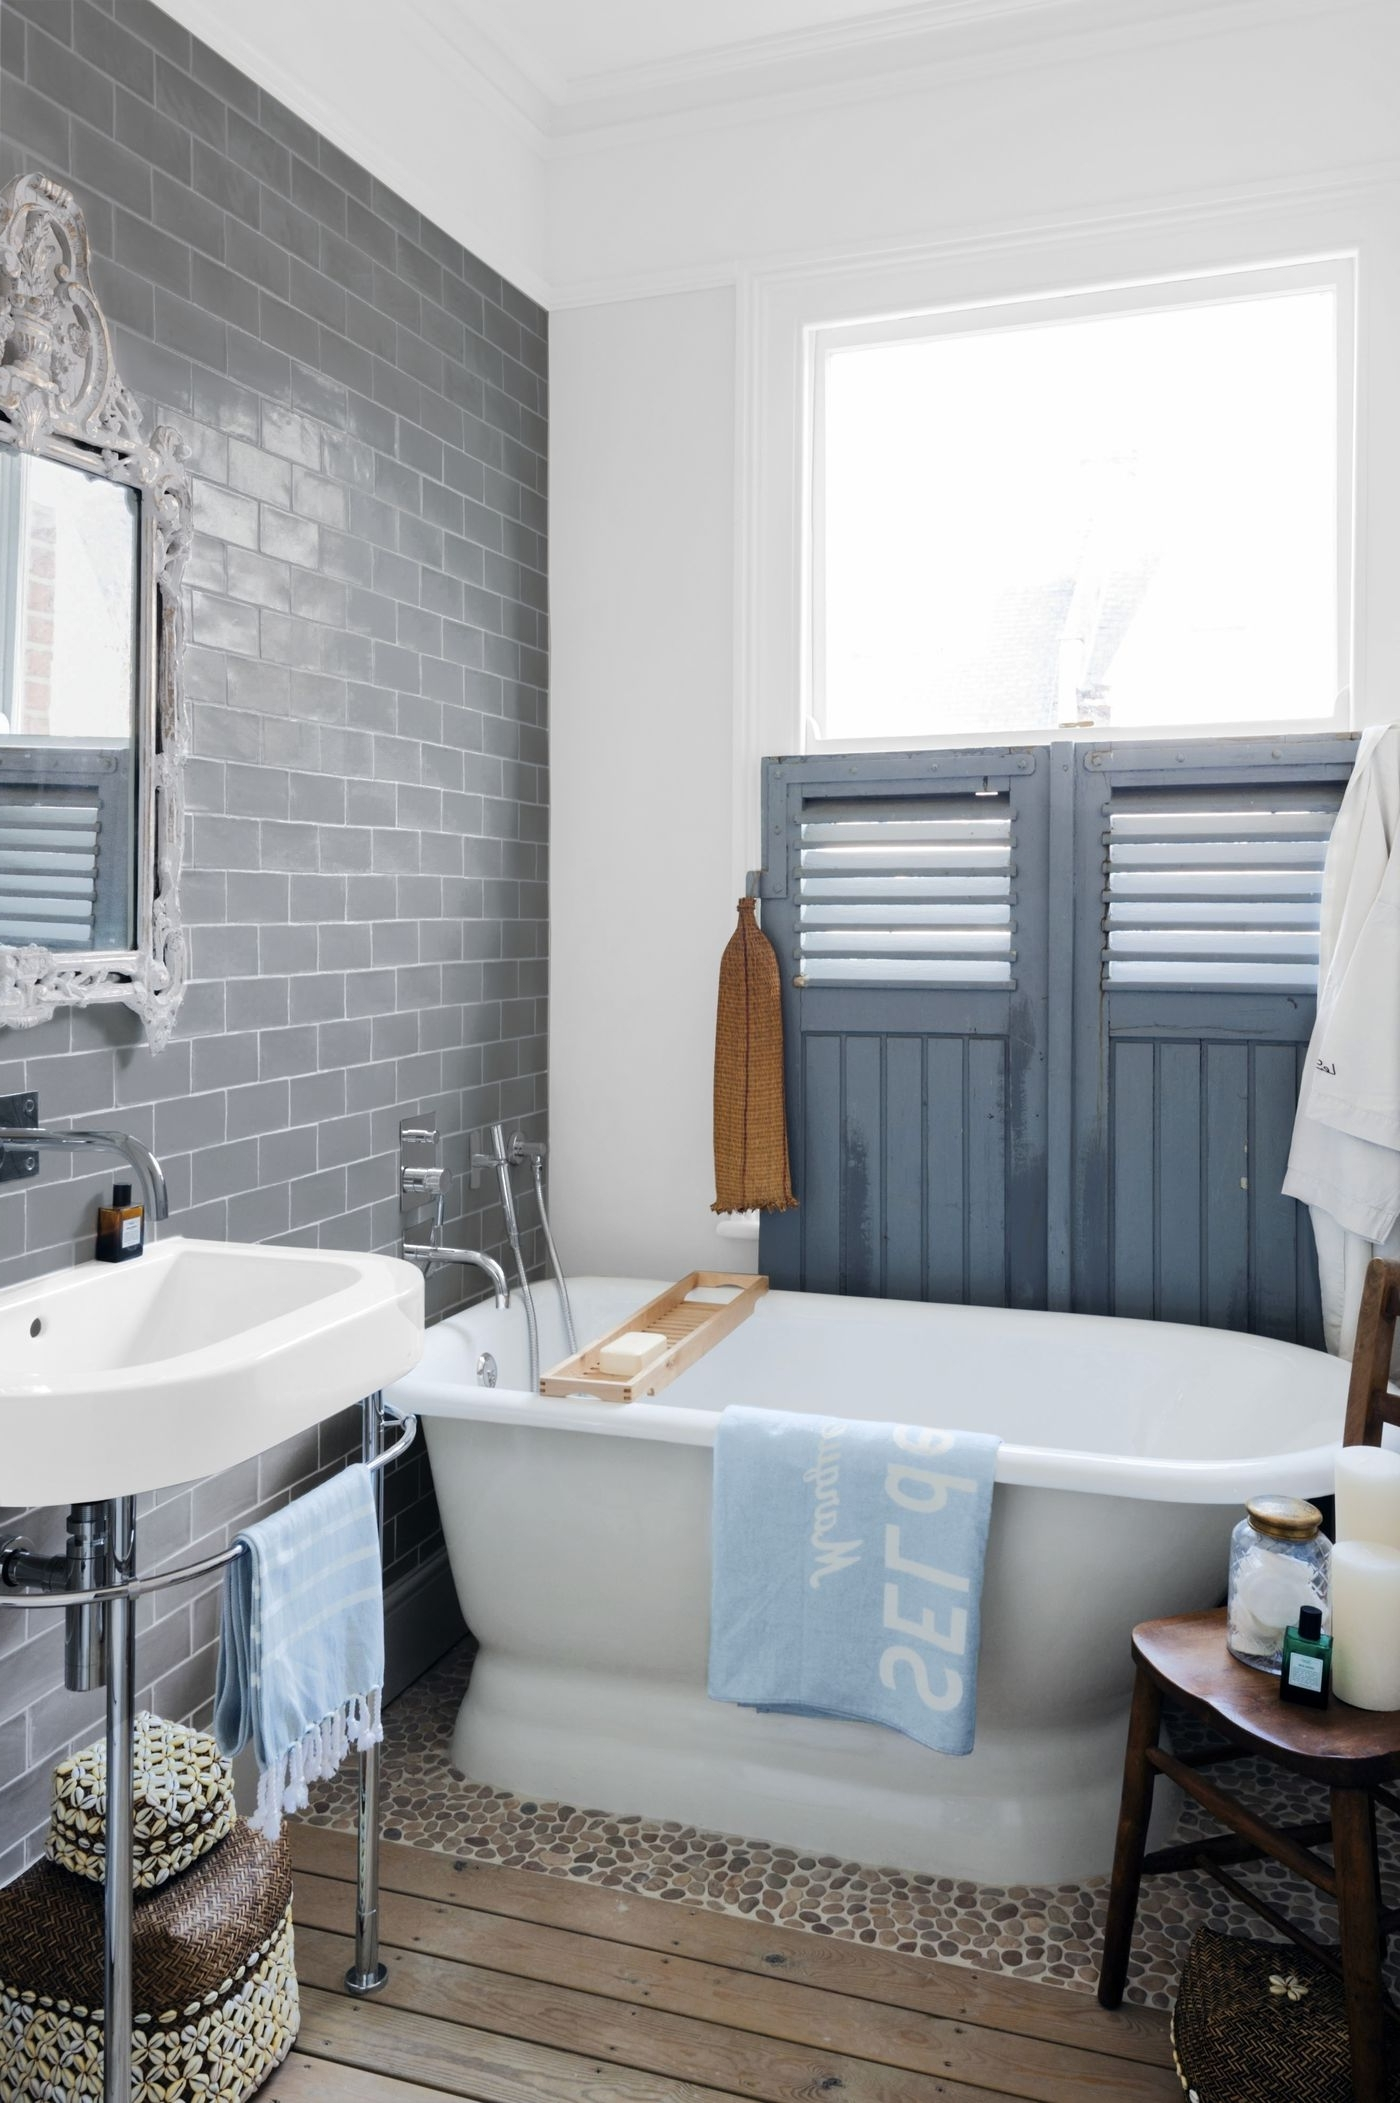 20 Budget Friendly Bath Ideas This Old House Small Bathroom Panelling